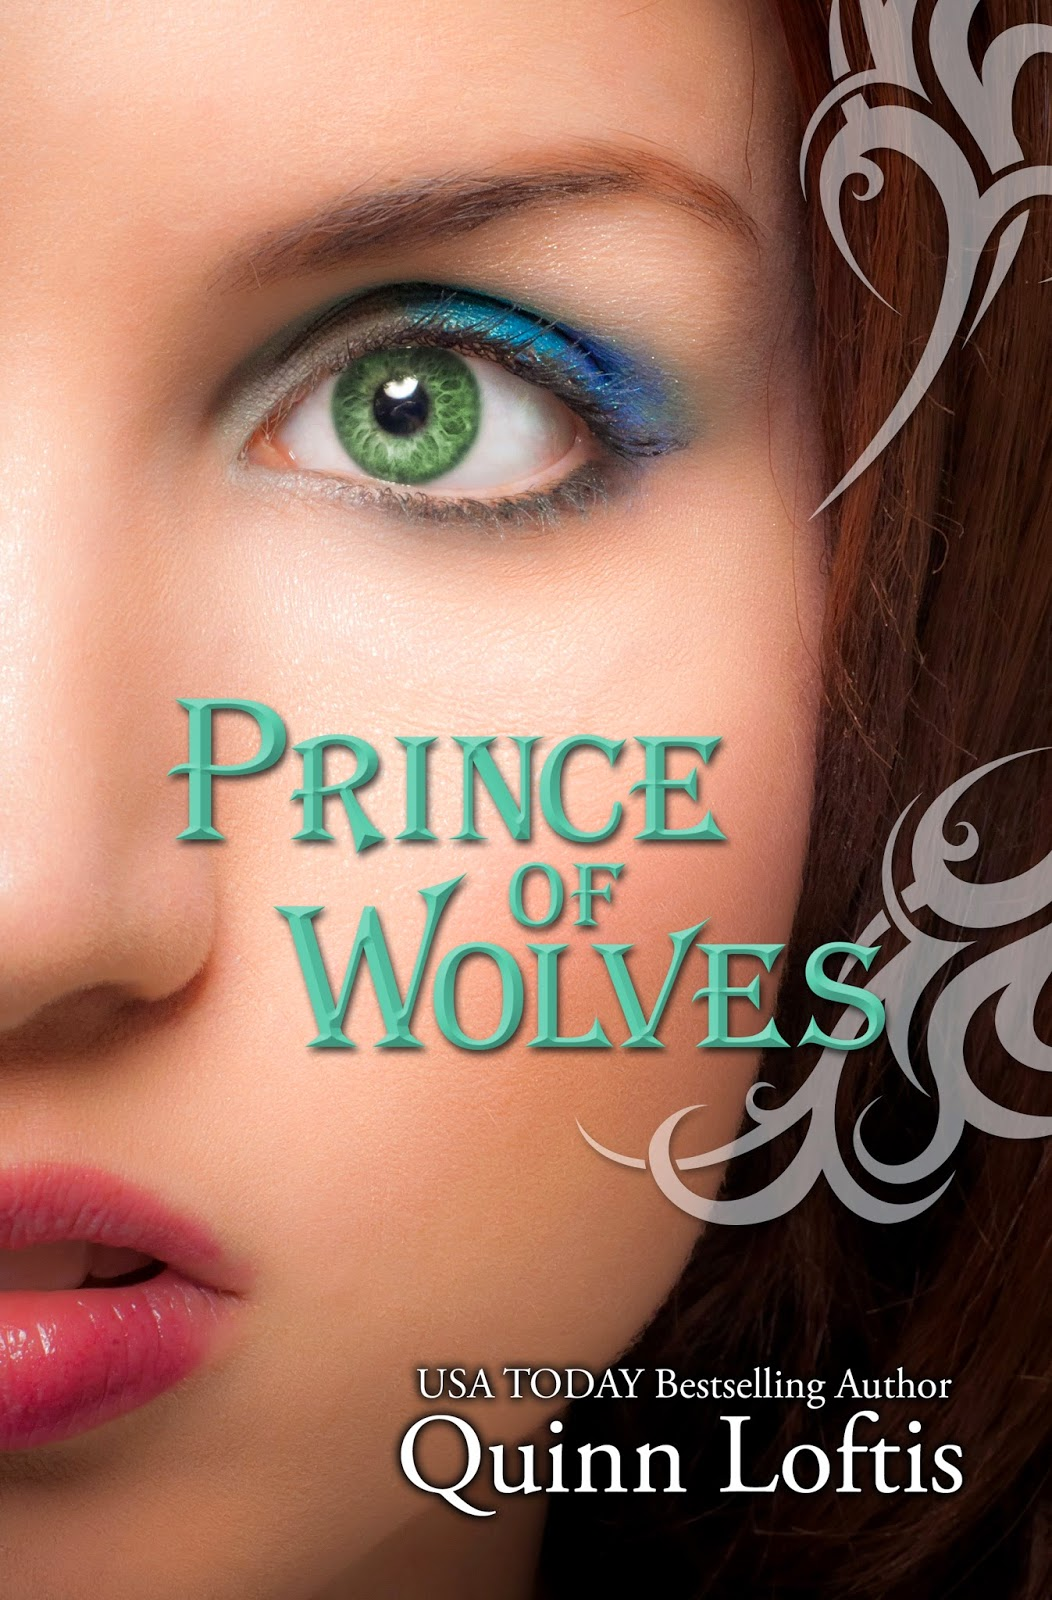 http://www.amazon.com/Prince-Wolves-Grey-Book-ebook/dp/B005983WCQ/ref=sr_1_1?s=books&ie=UTF8&qid=1419277253&sr=1-1&keywords=prince+of+wolves